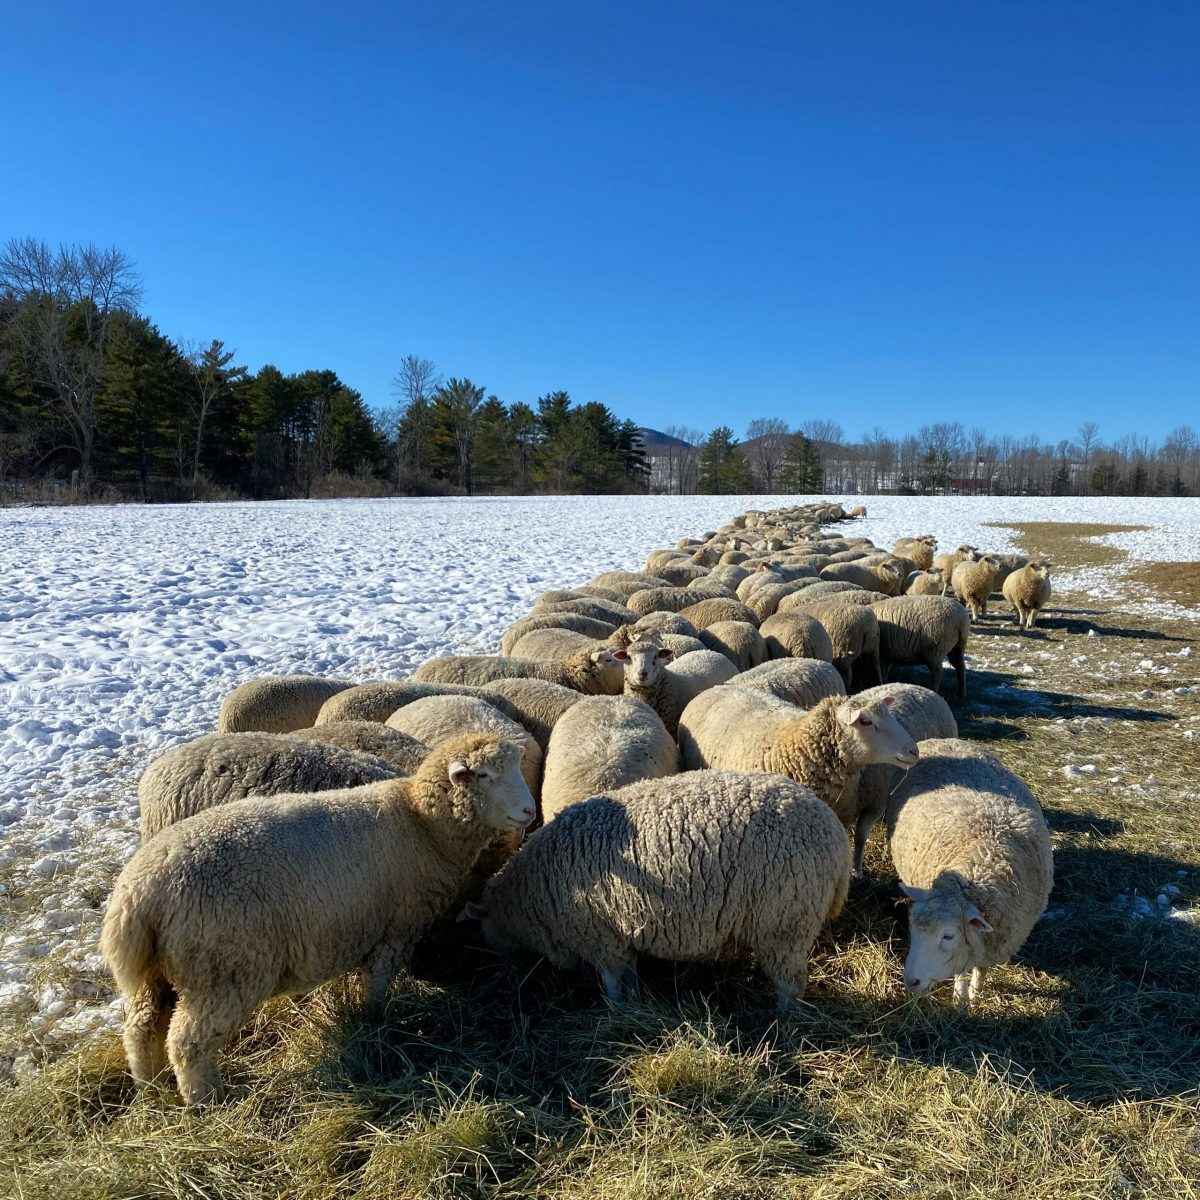 Sheep bale grazing on snow